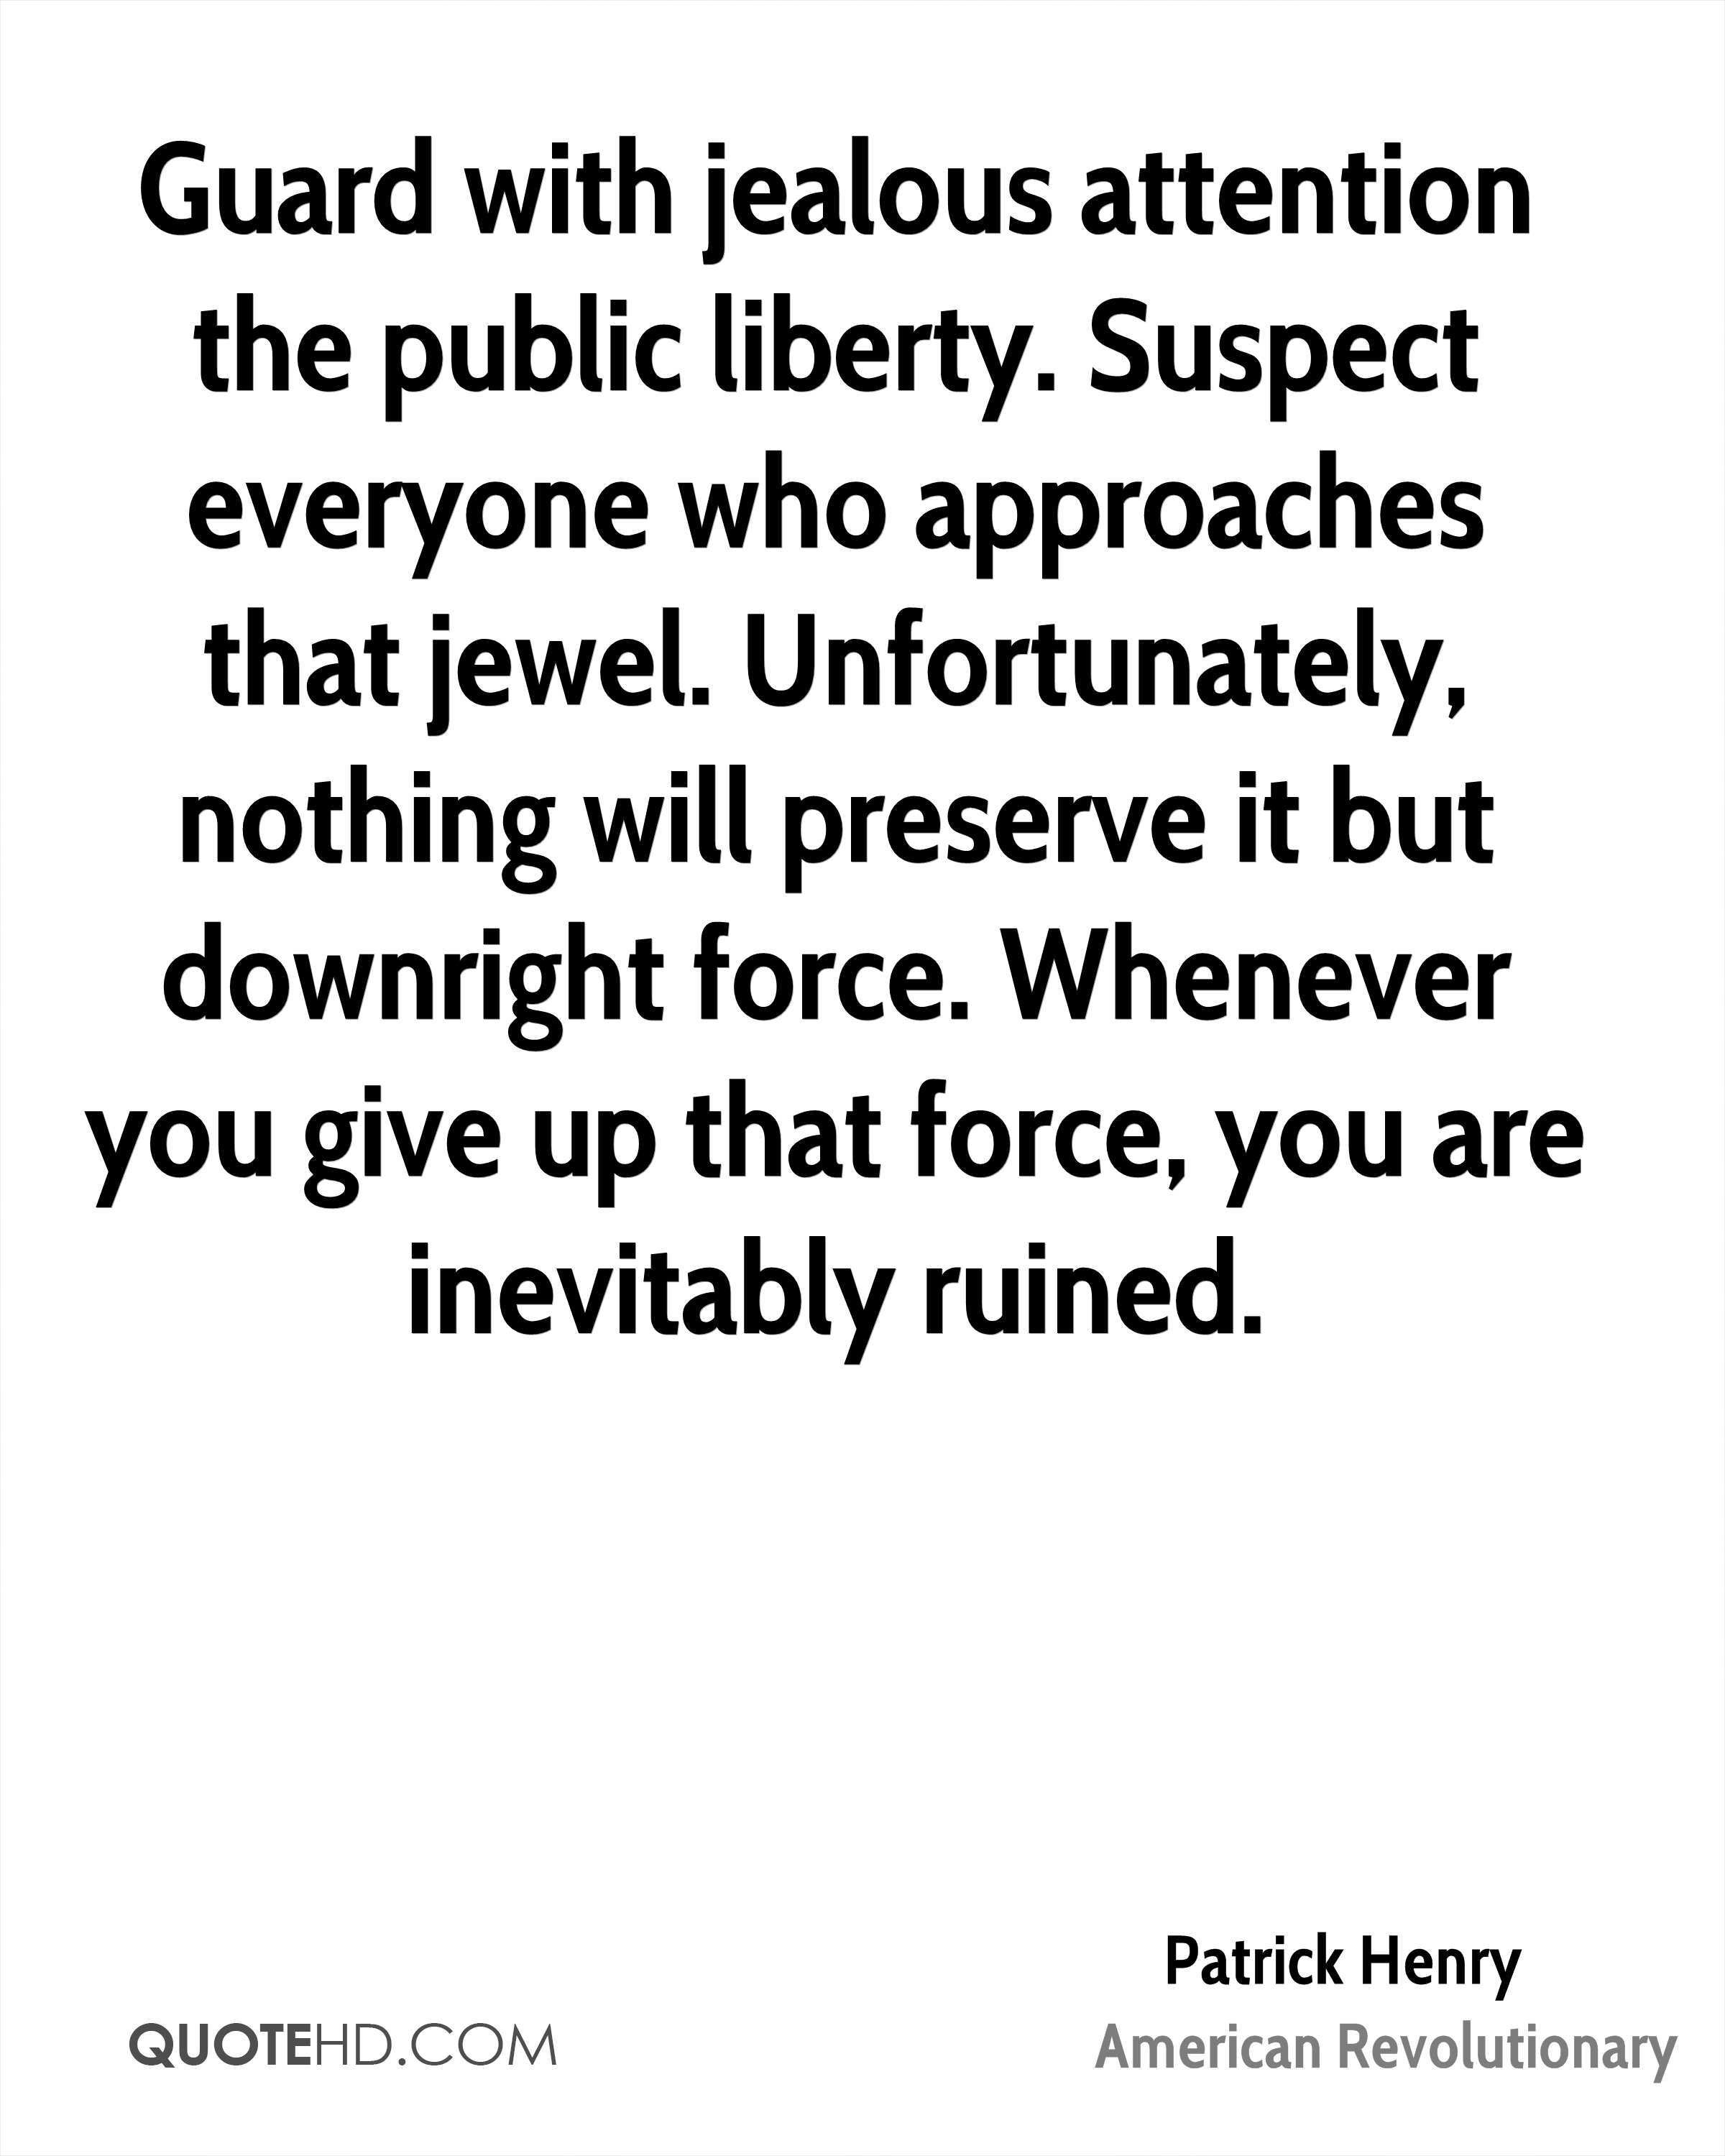 Guard with jealous attention the public liberty. Suspect everyone who approaches that jewel. Unfortunately, nothing will preserve it but downright force. Whenever you give up that force, you are inevitably ruined.